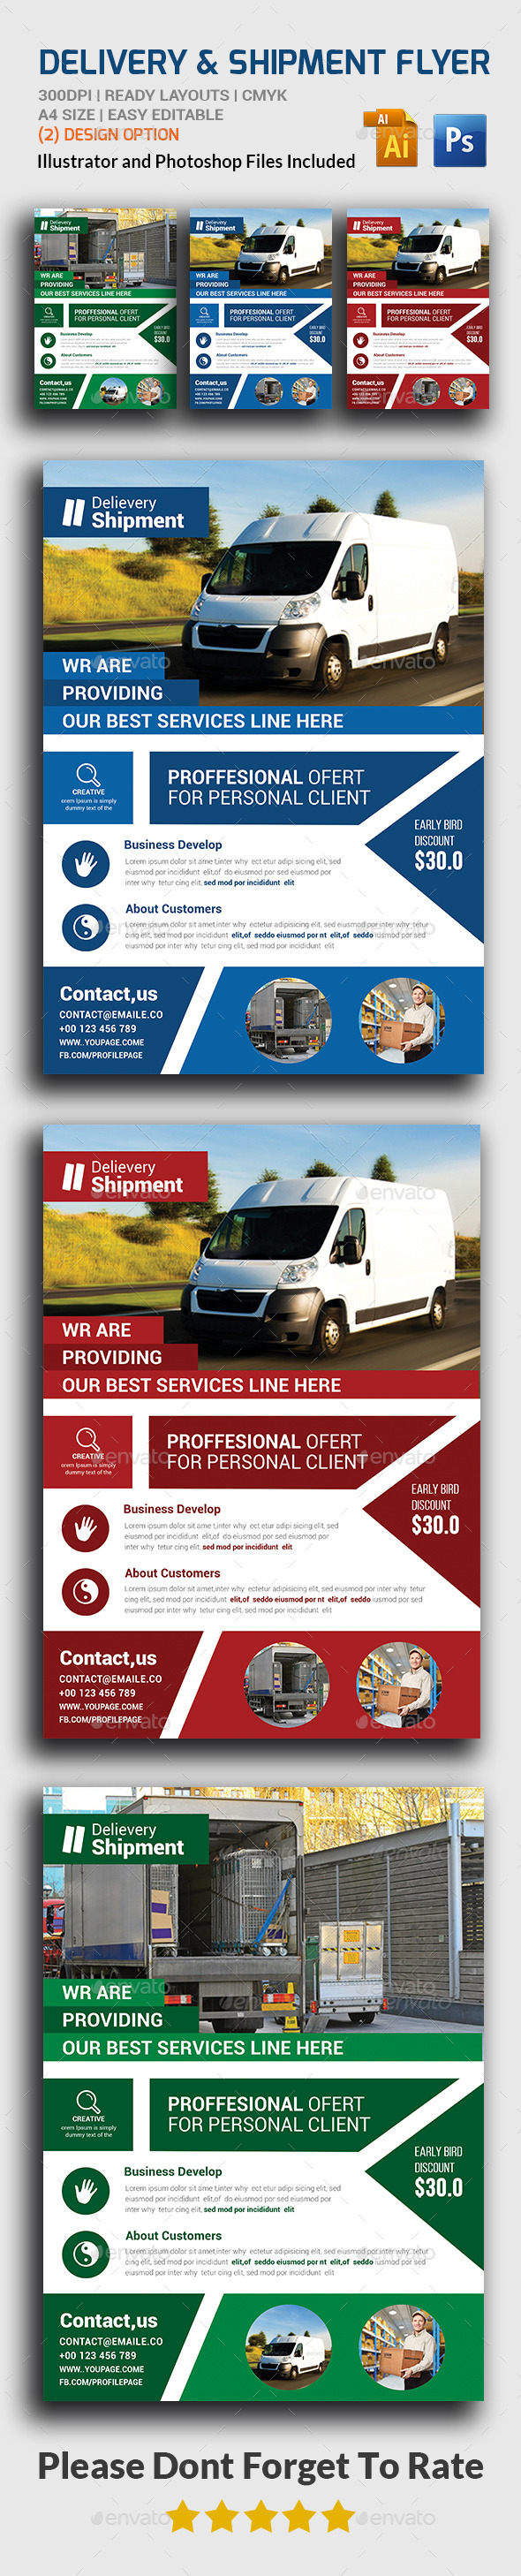 Delivery & Shipment Flyer  - Corporate Flyers